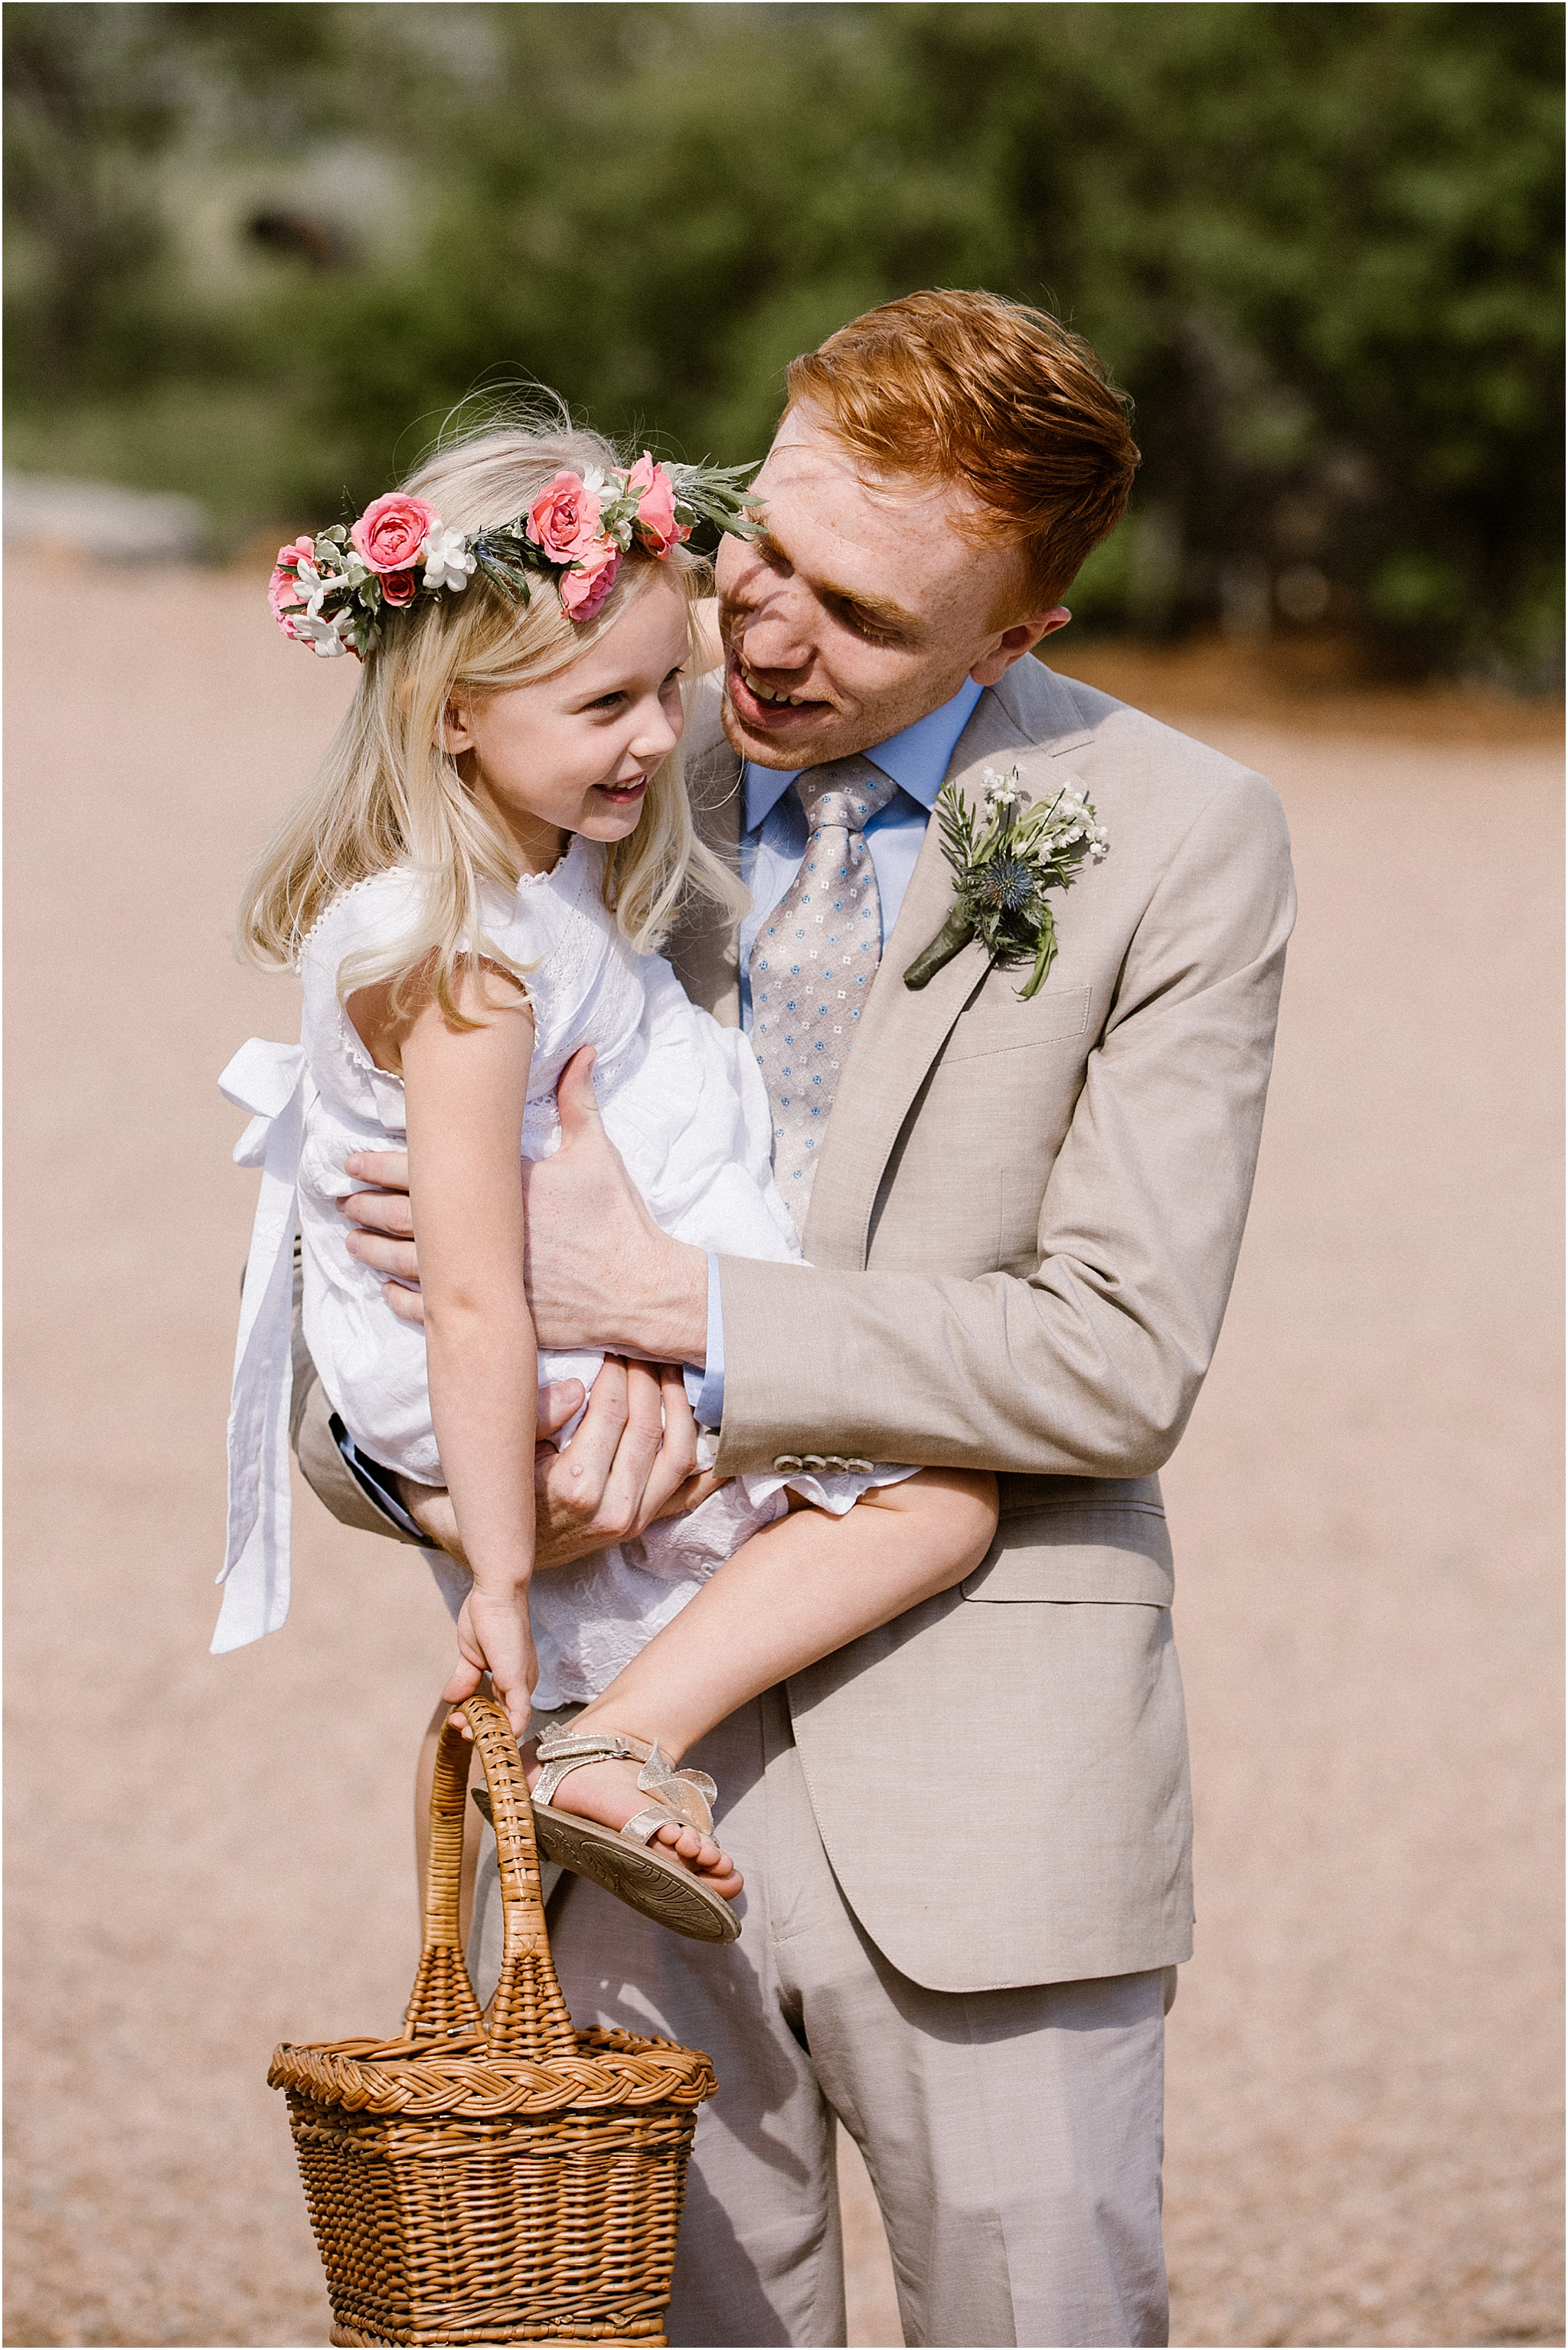 AMELIA_JASON_SANTA FE_ WEDDING_BLUE ROSE PHOTOGRAPHY79